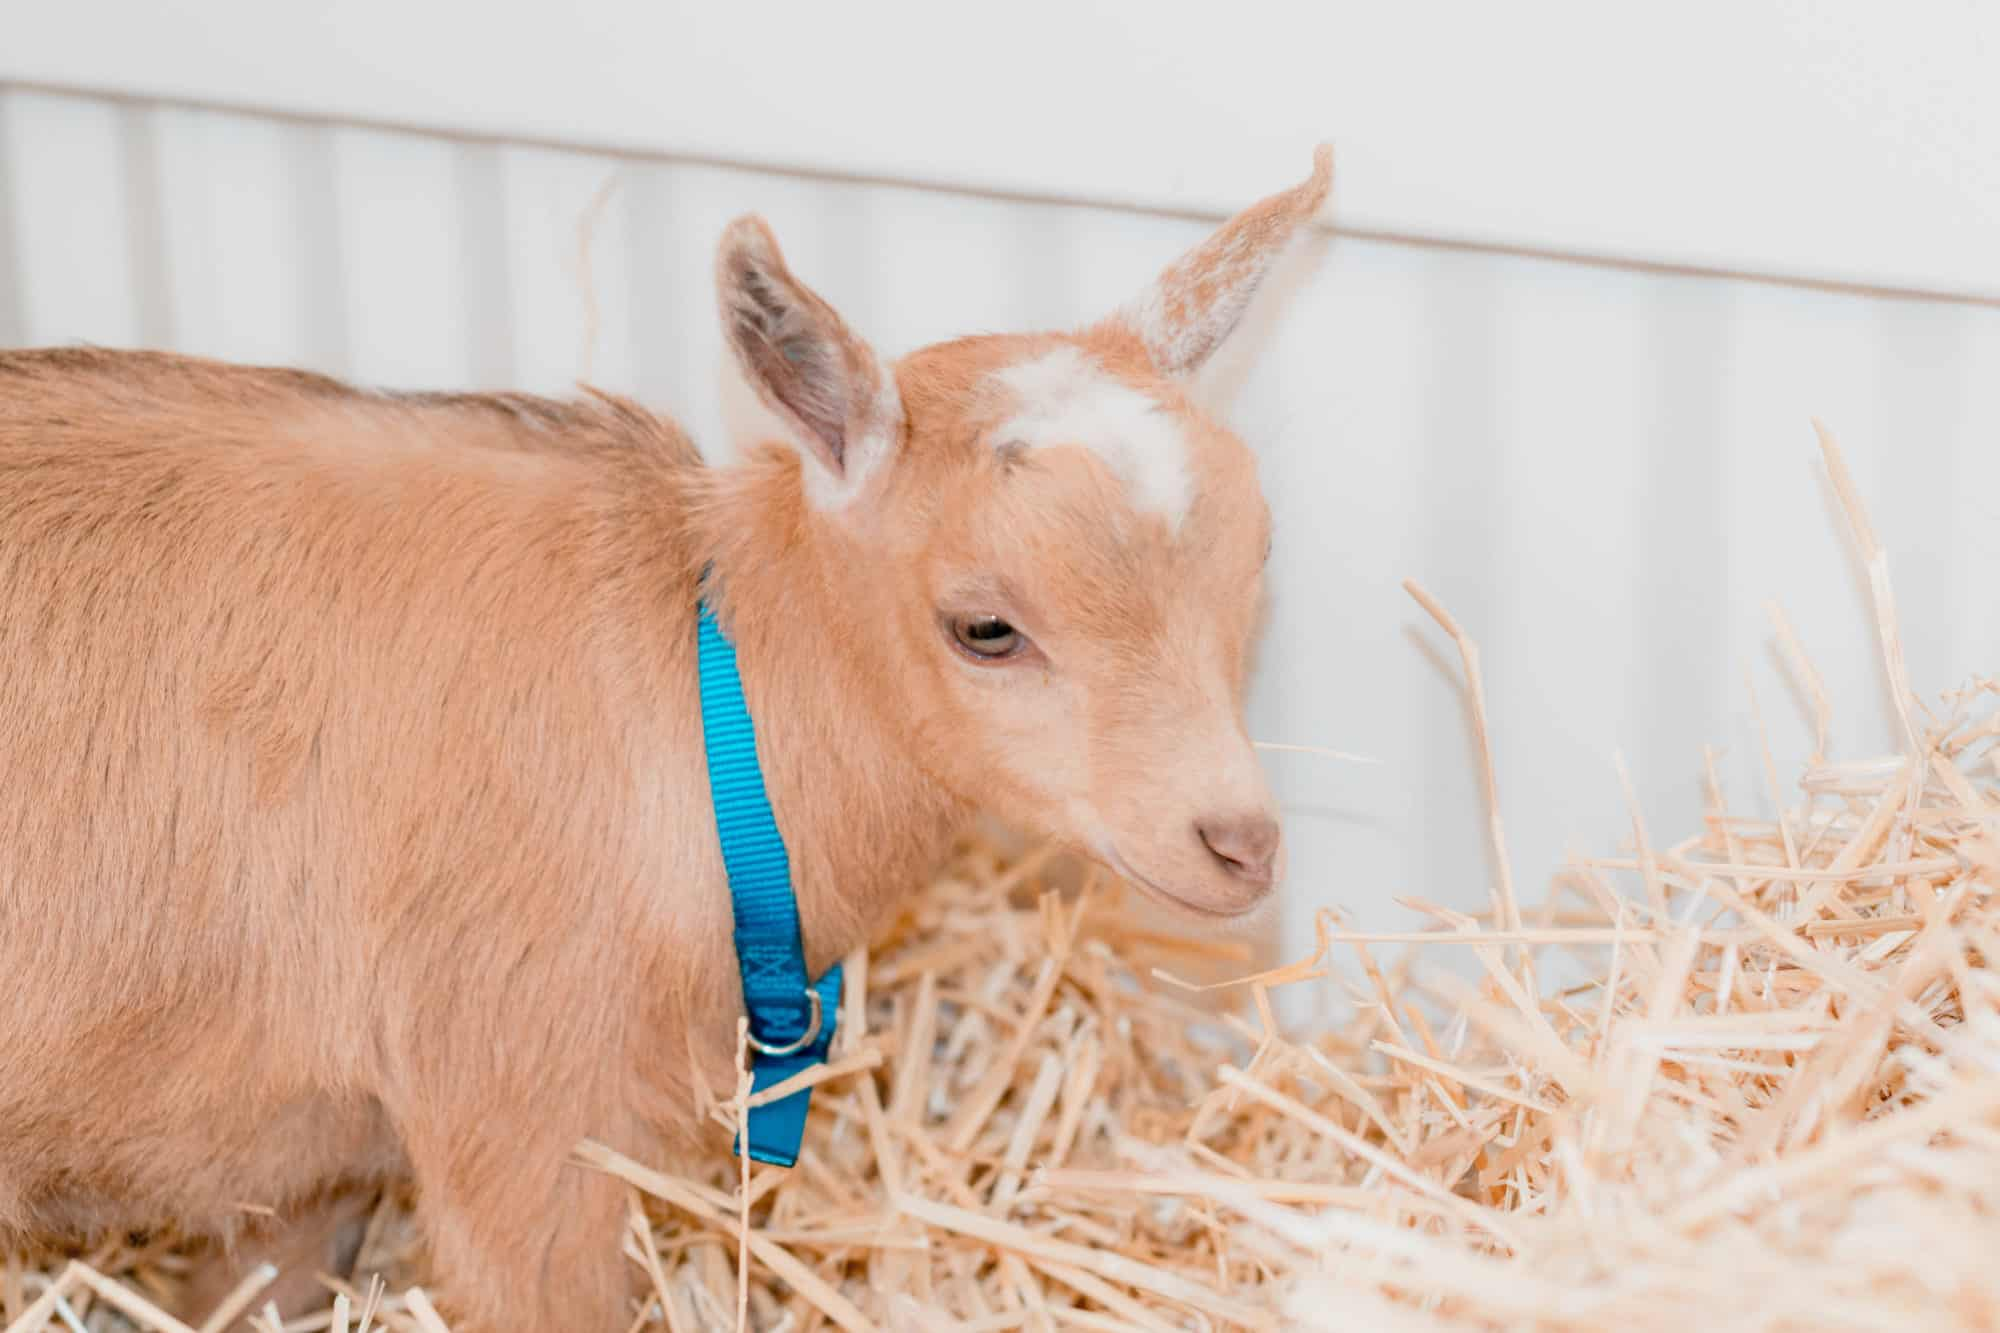 The Frenchie Farm baby goat